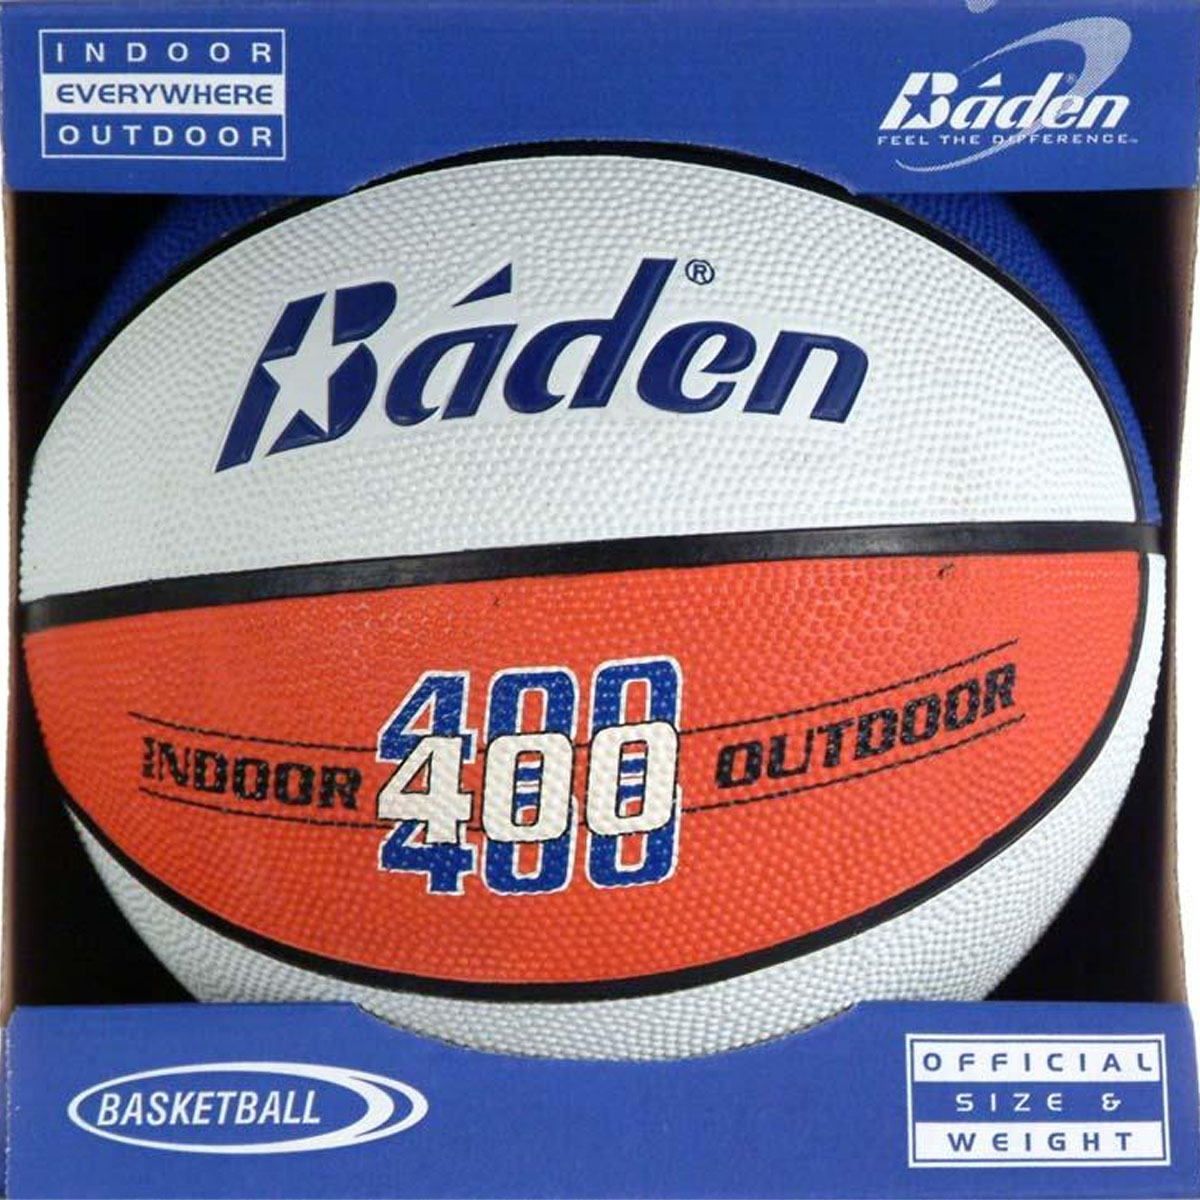 Baden Sports Inc. Baden Official Rubber Basketball Red, White & Blue BR7-3004A by Baden Sports Inc.